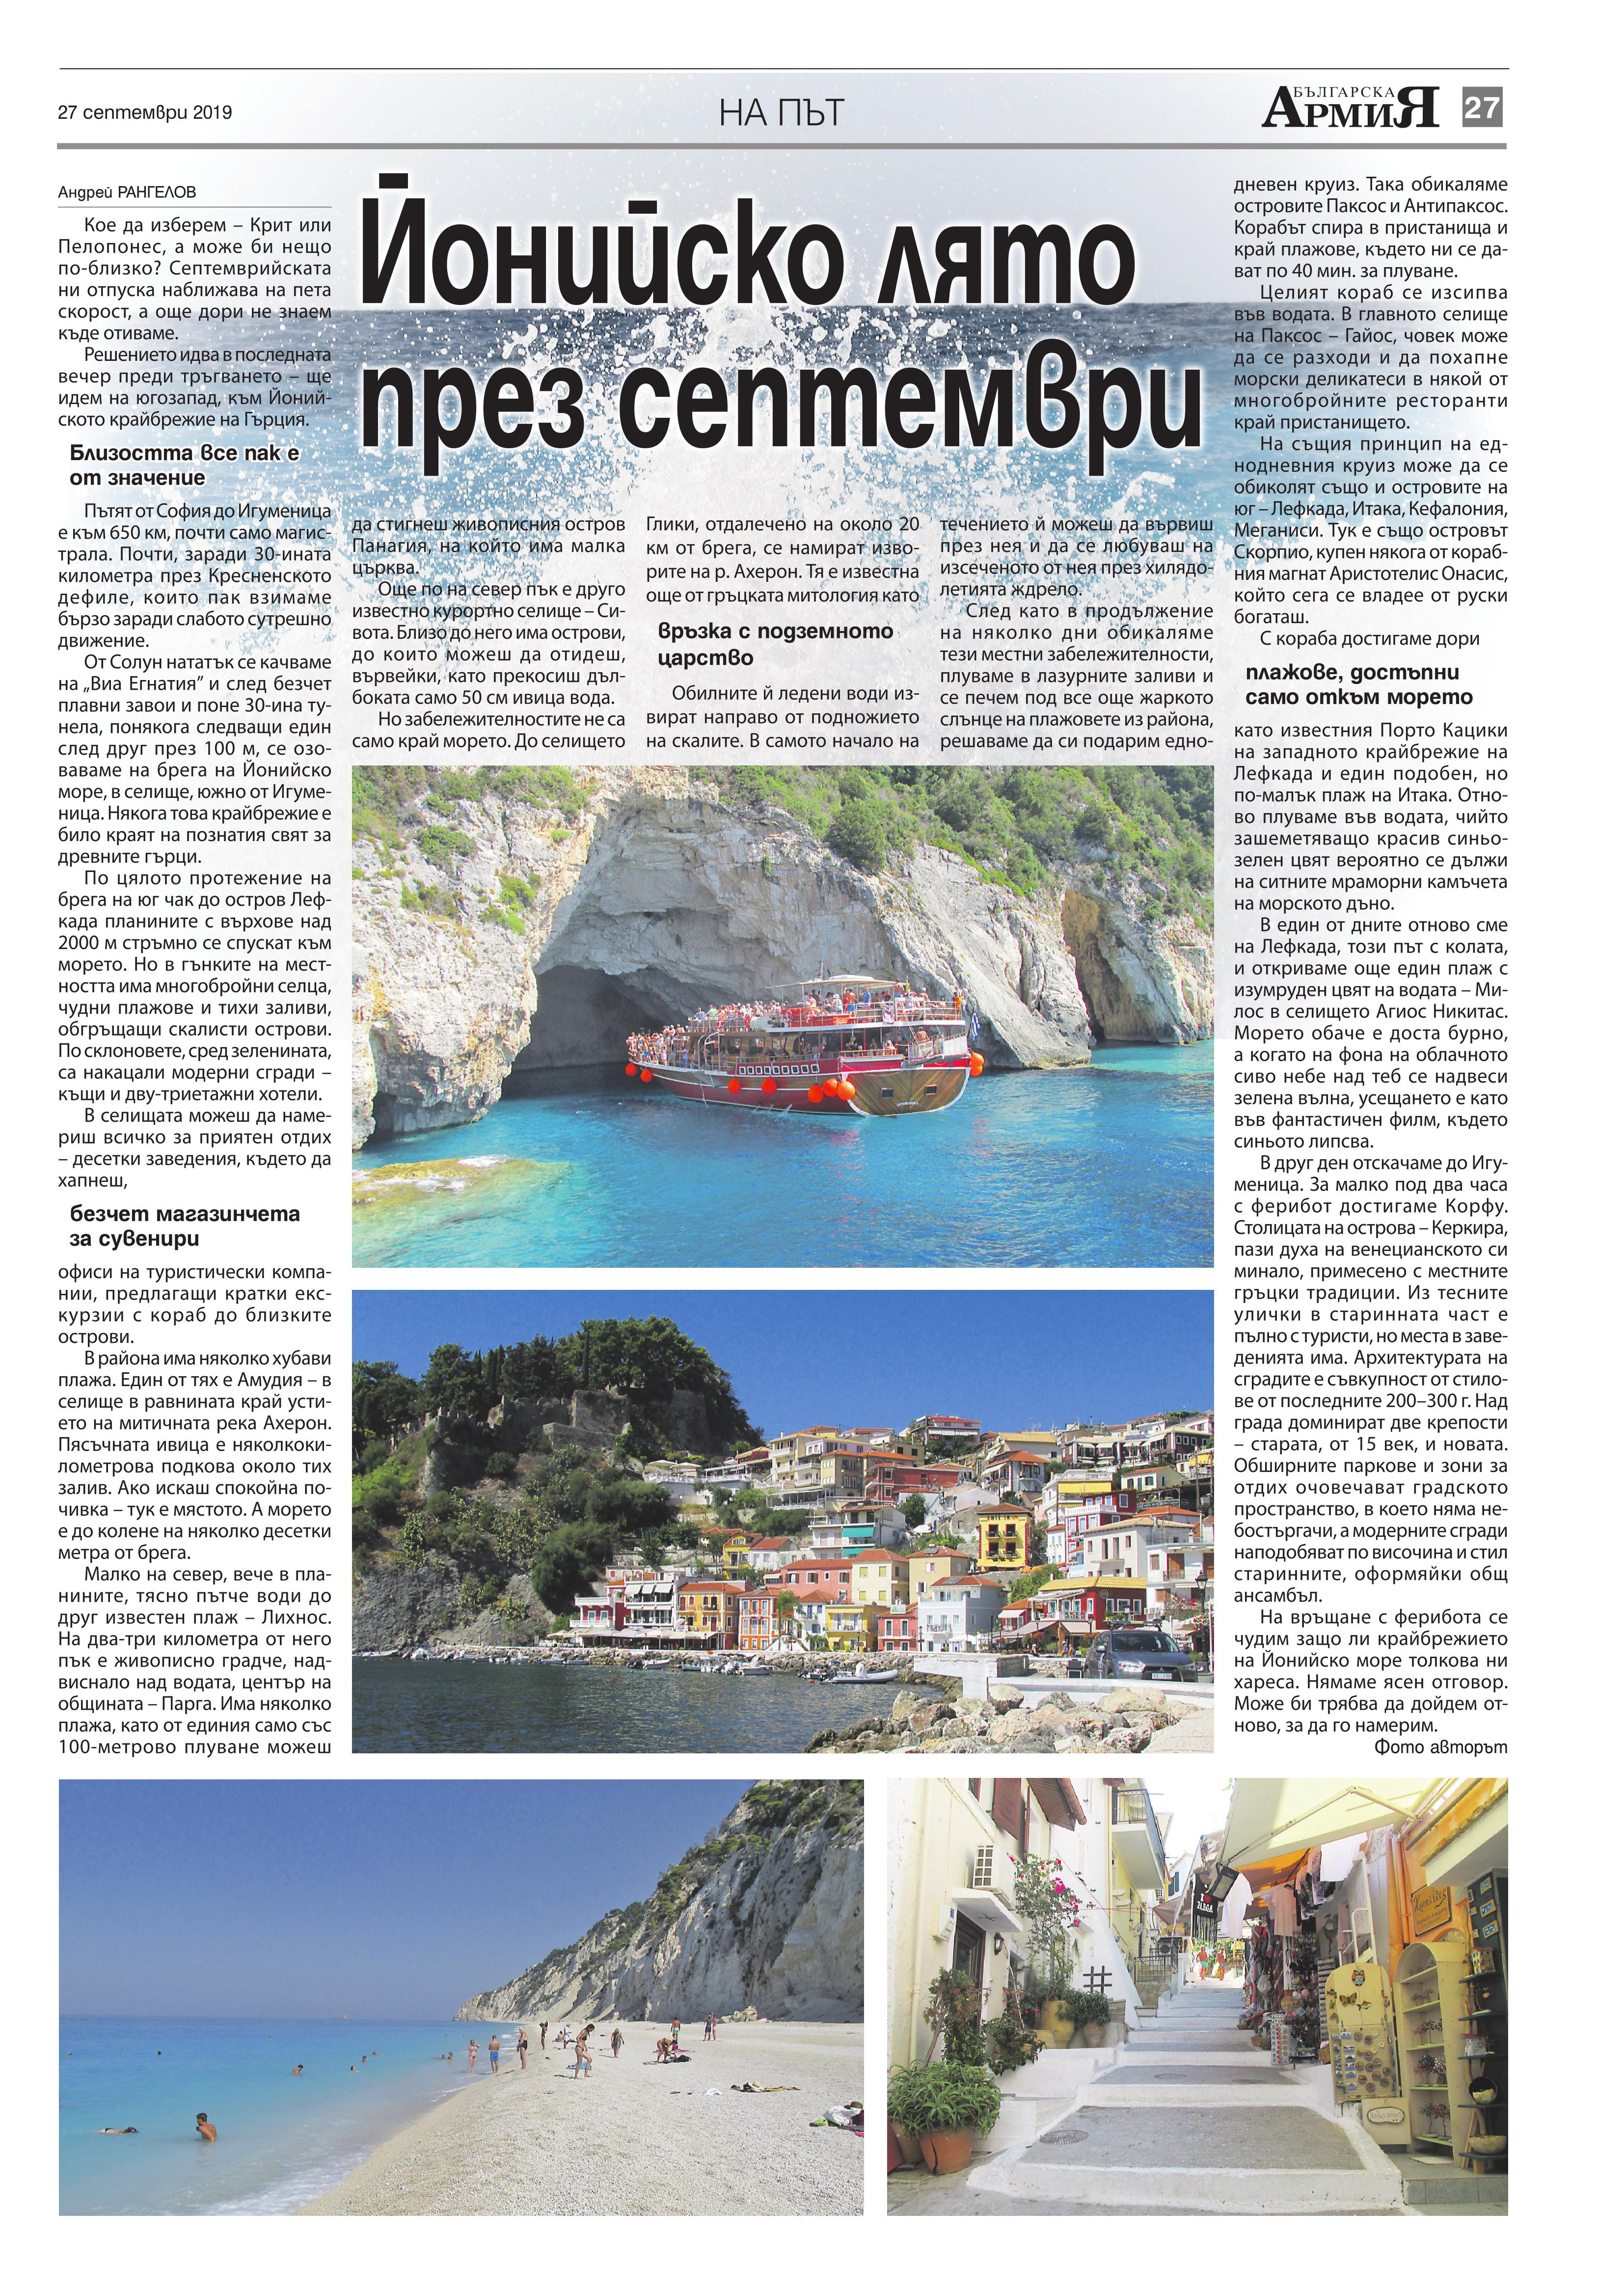 https://www.armymedia.bg/wp-content/uploads/2015/06/27.page1_-91.jpg